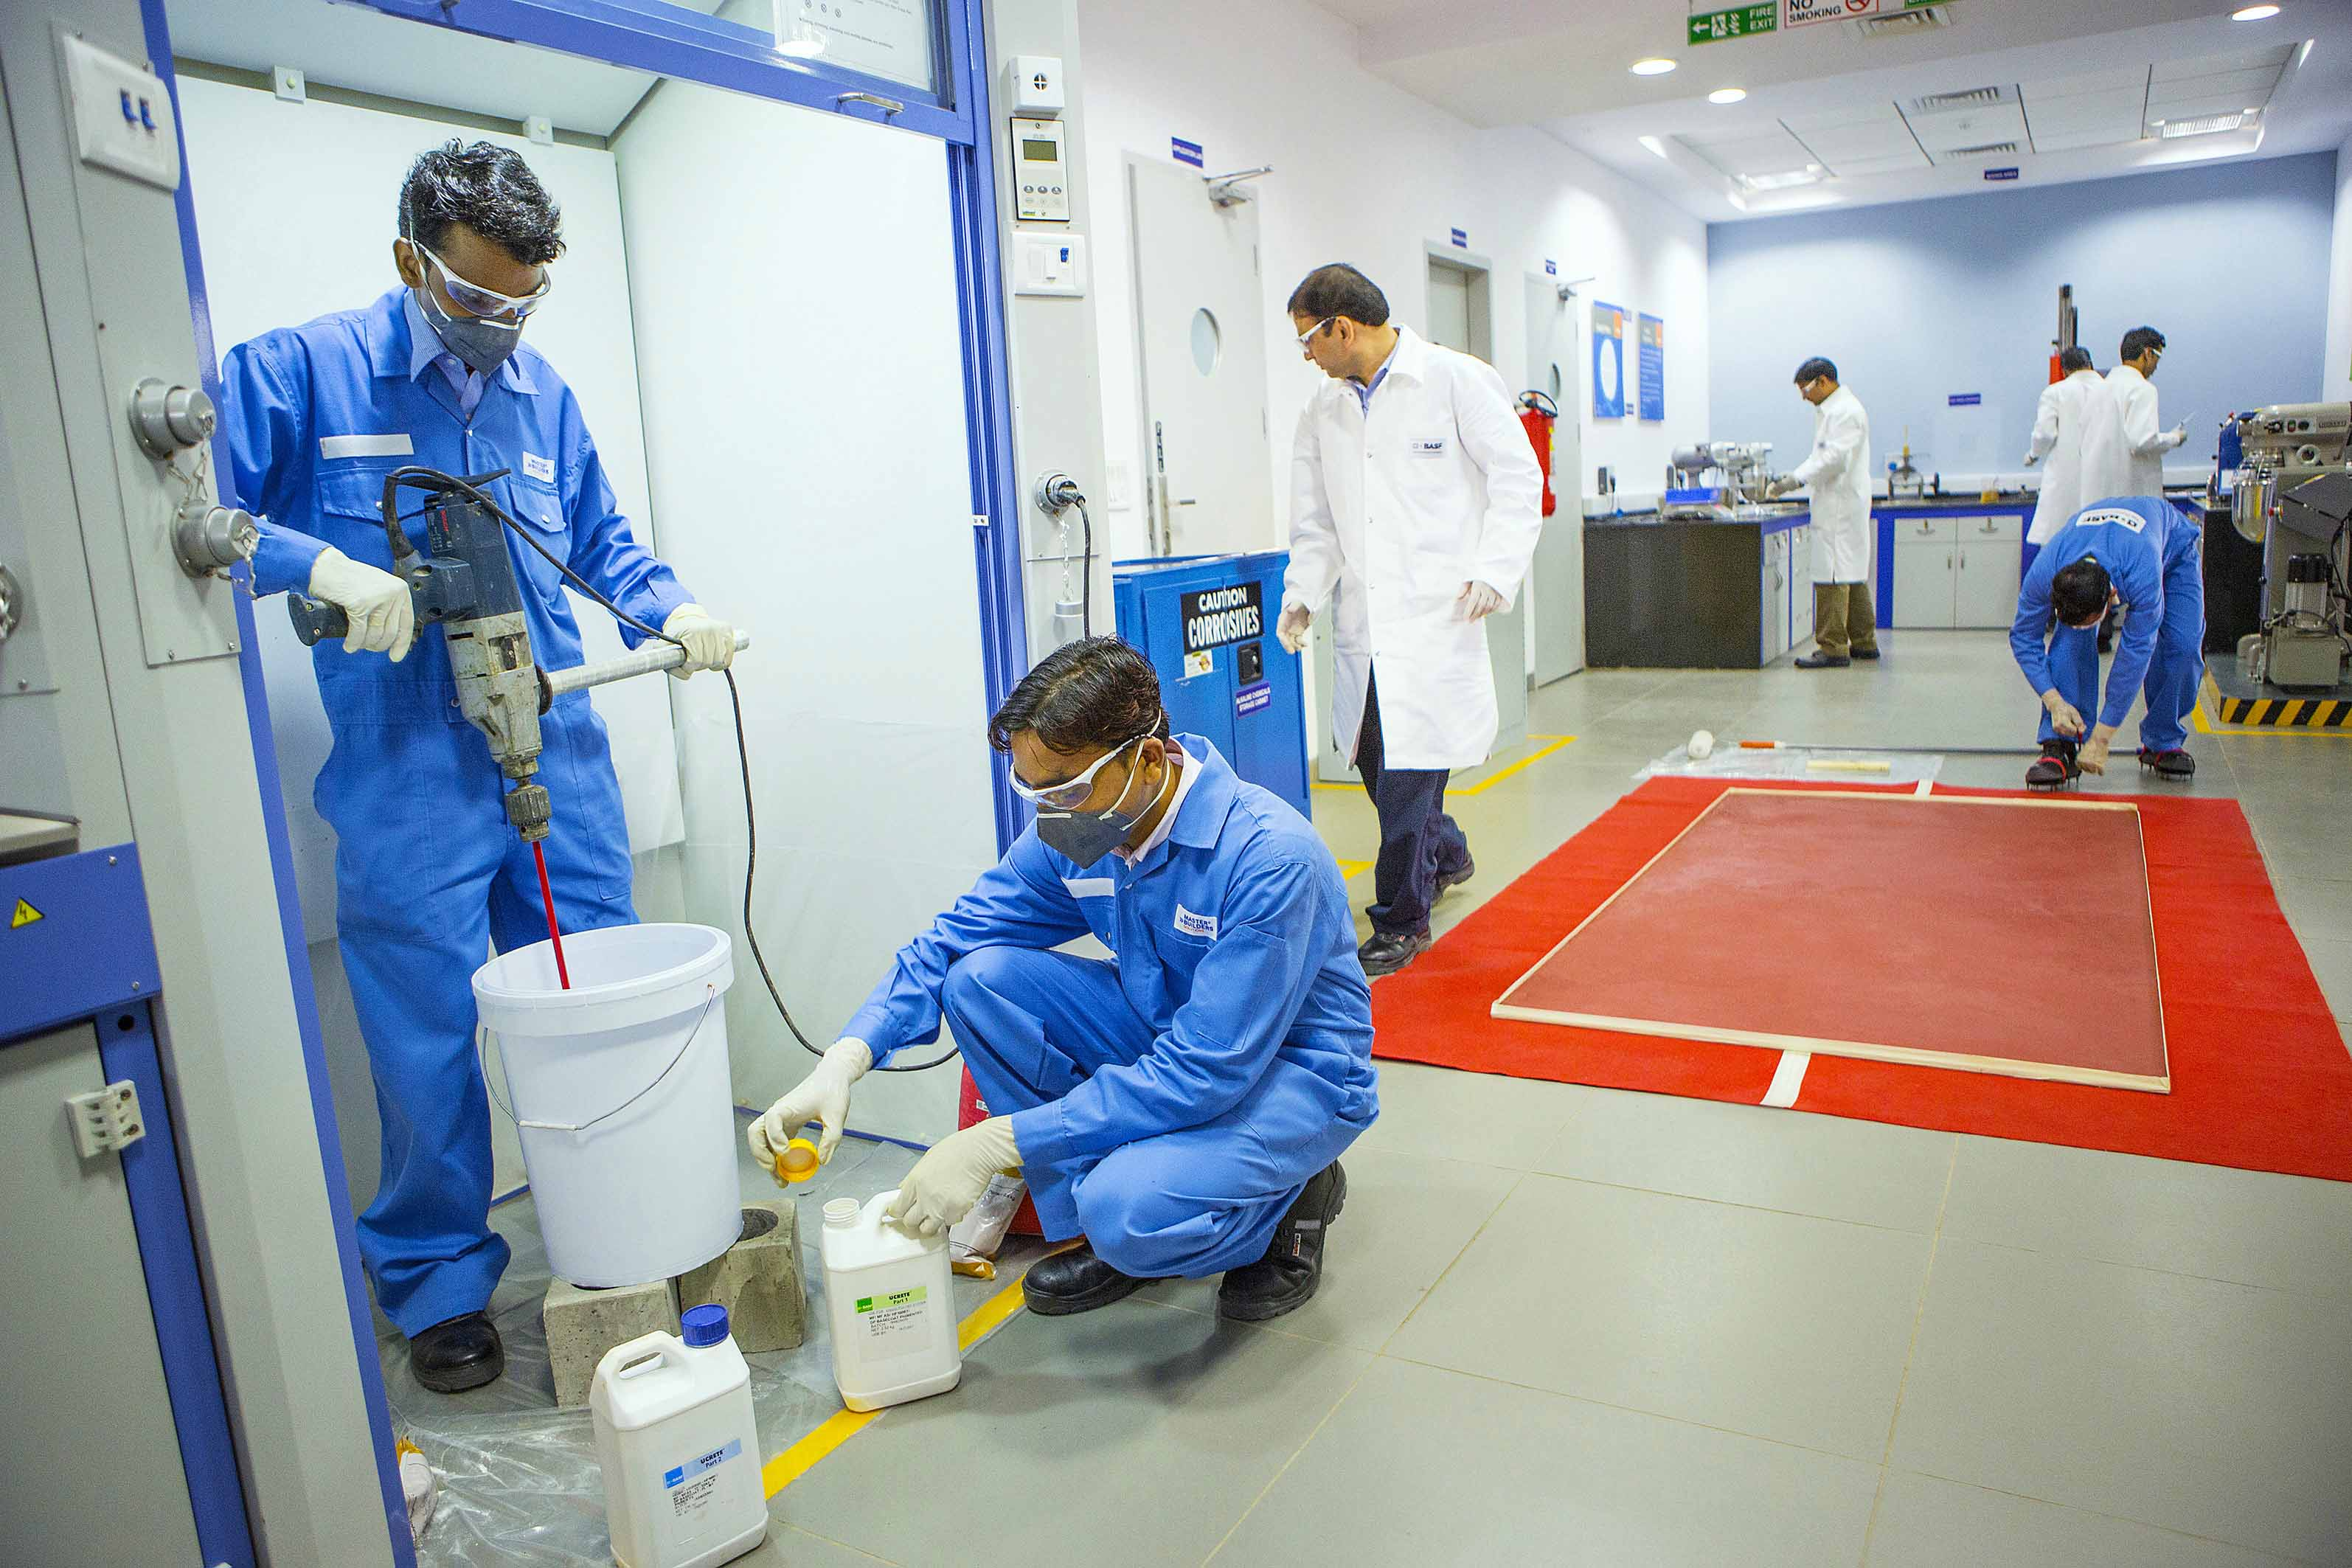 BASF LAUNCHES UCRETE® MF40AS INDUSTRIAL FLOORING SYSTEM ON